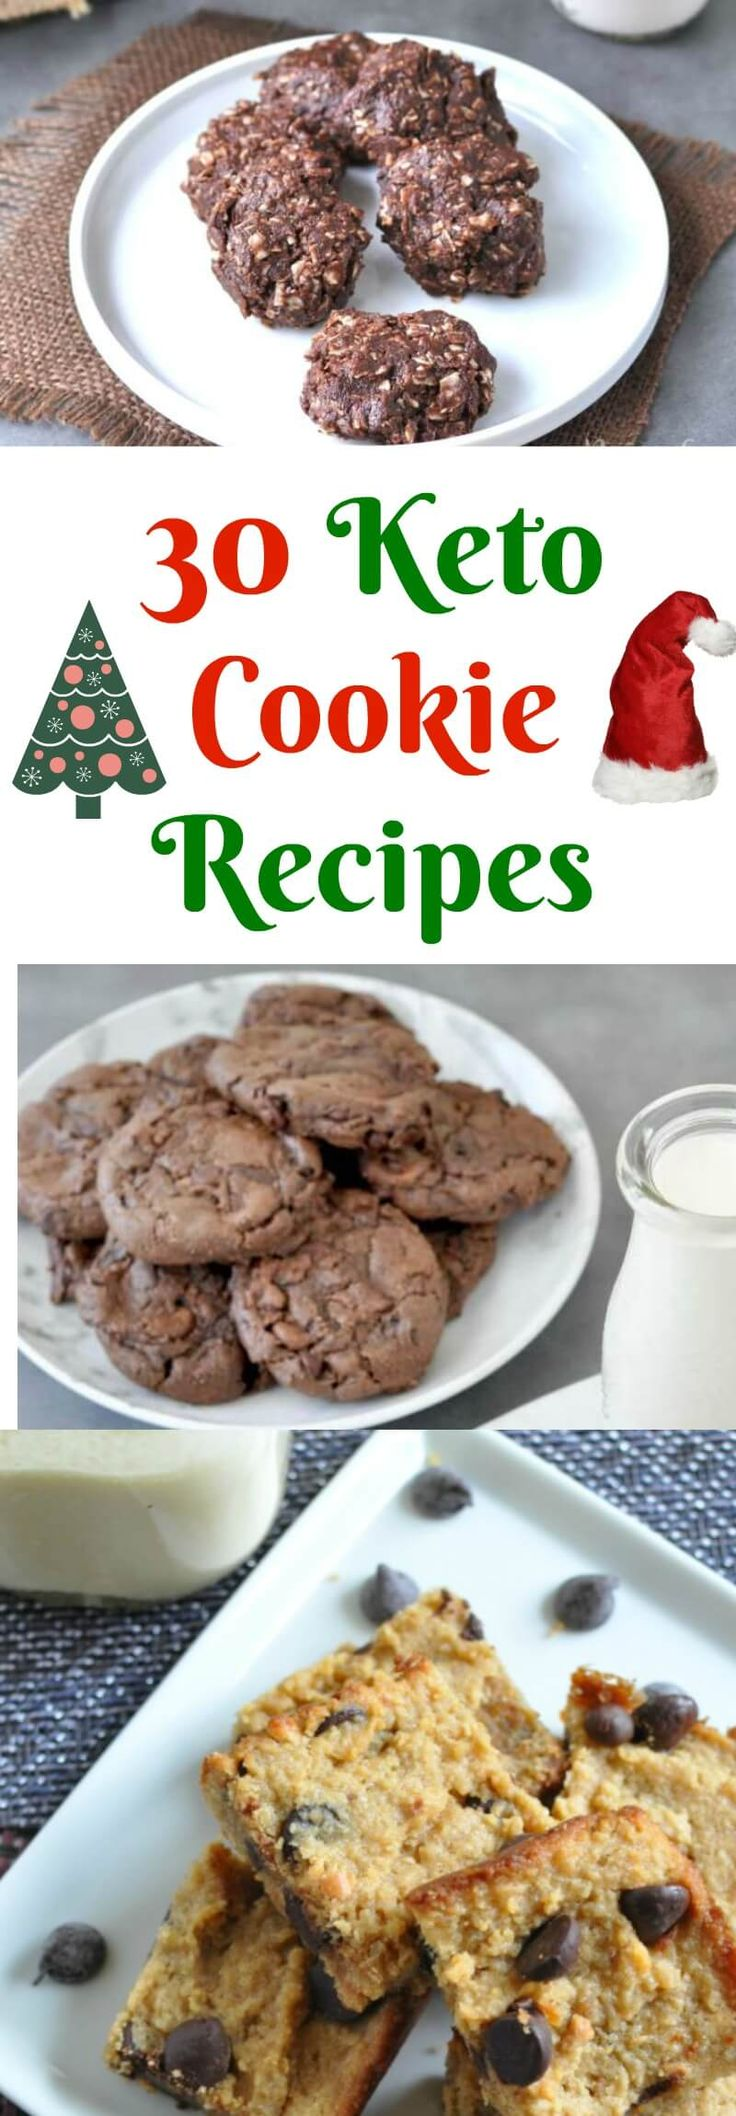 30 Keto Cookie Recipes | Peace Love and Low Carb via @PeaceLoveLoCarb